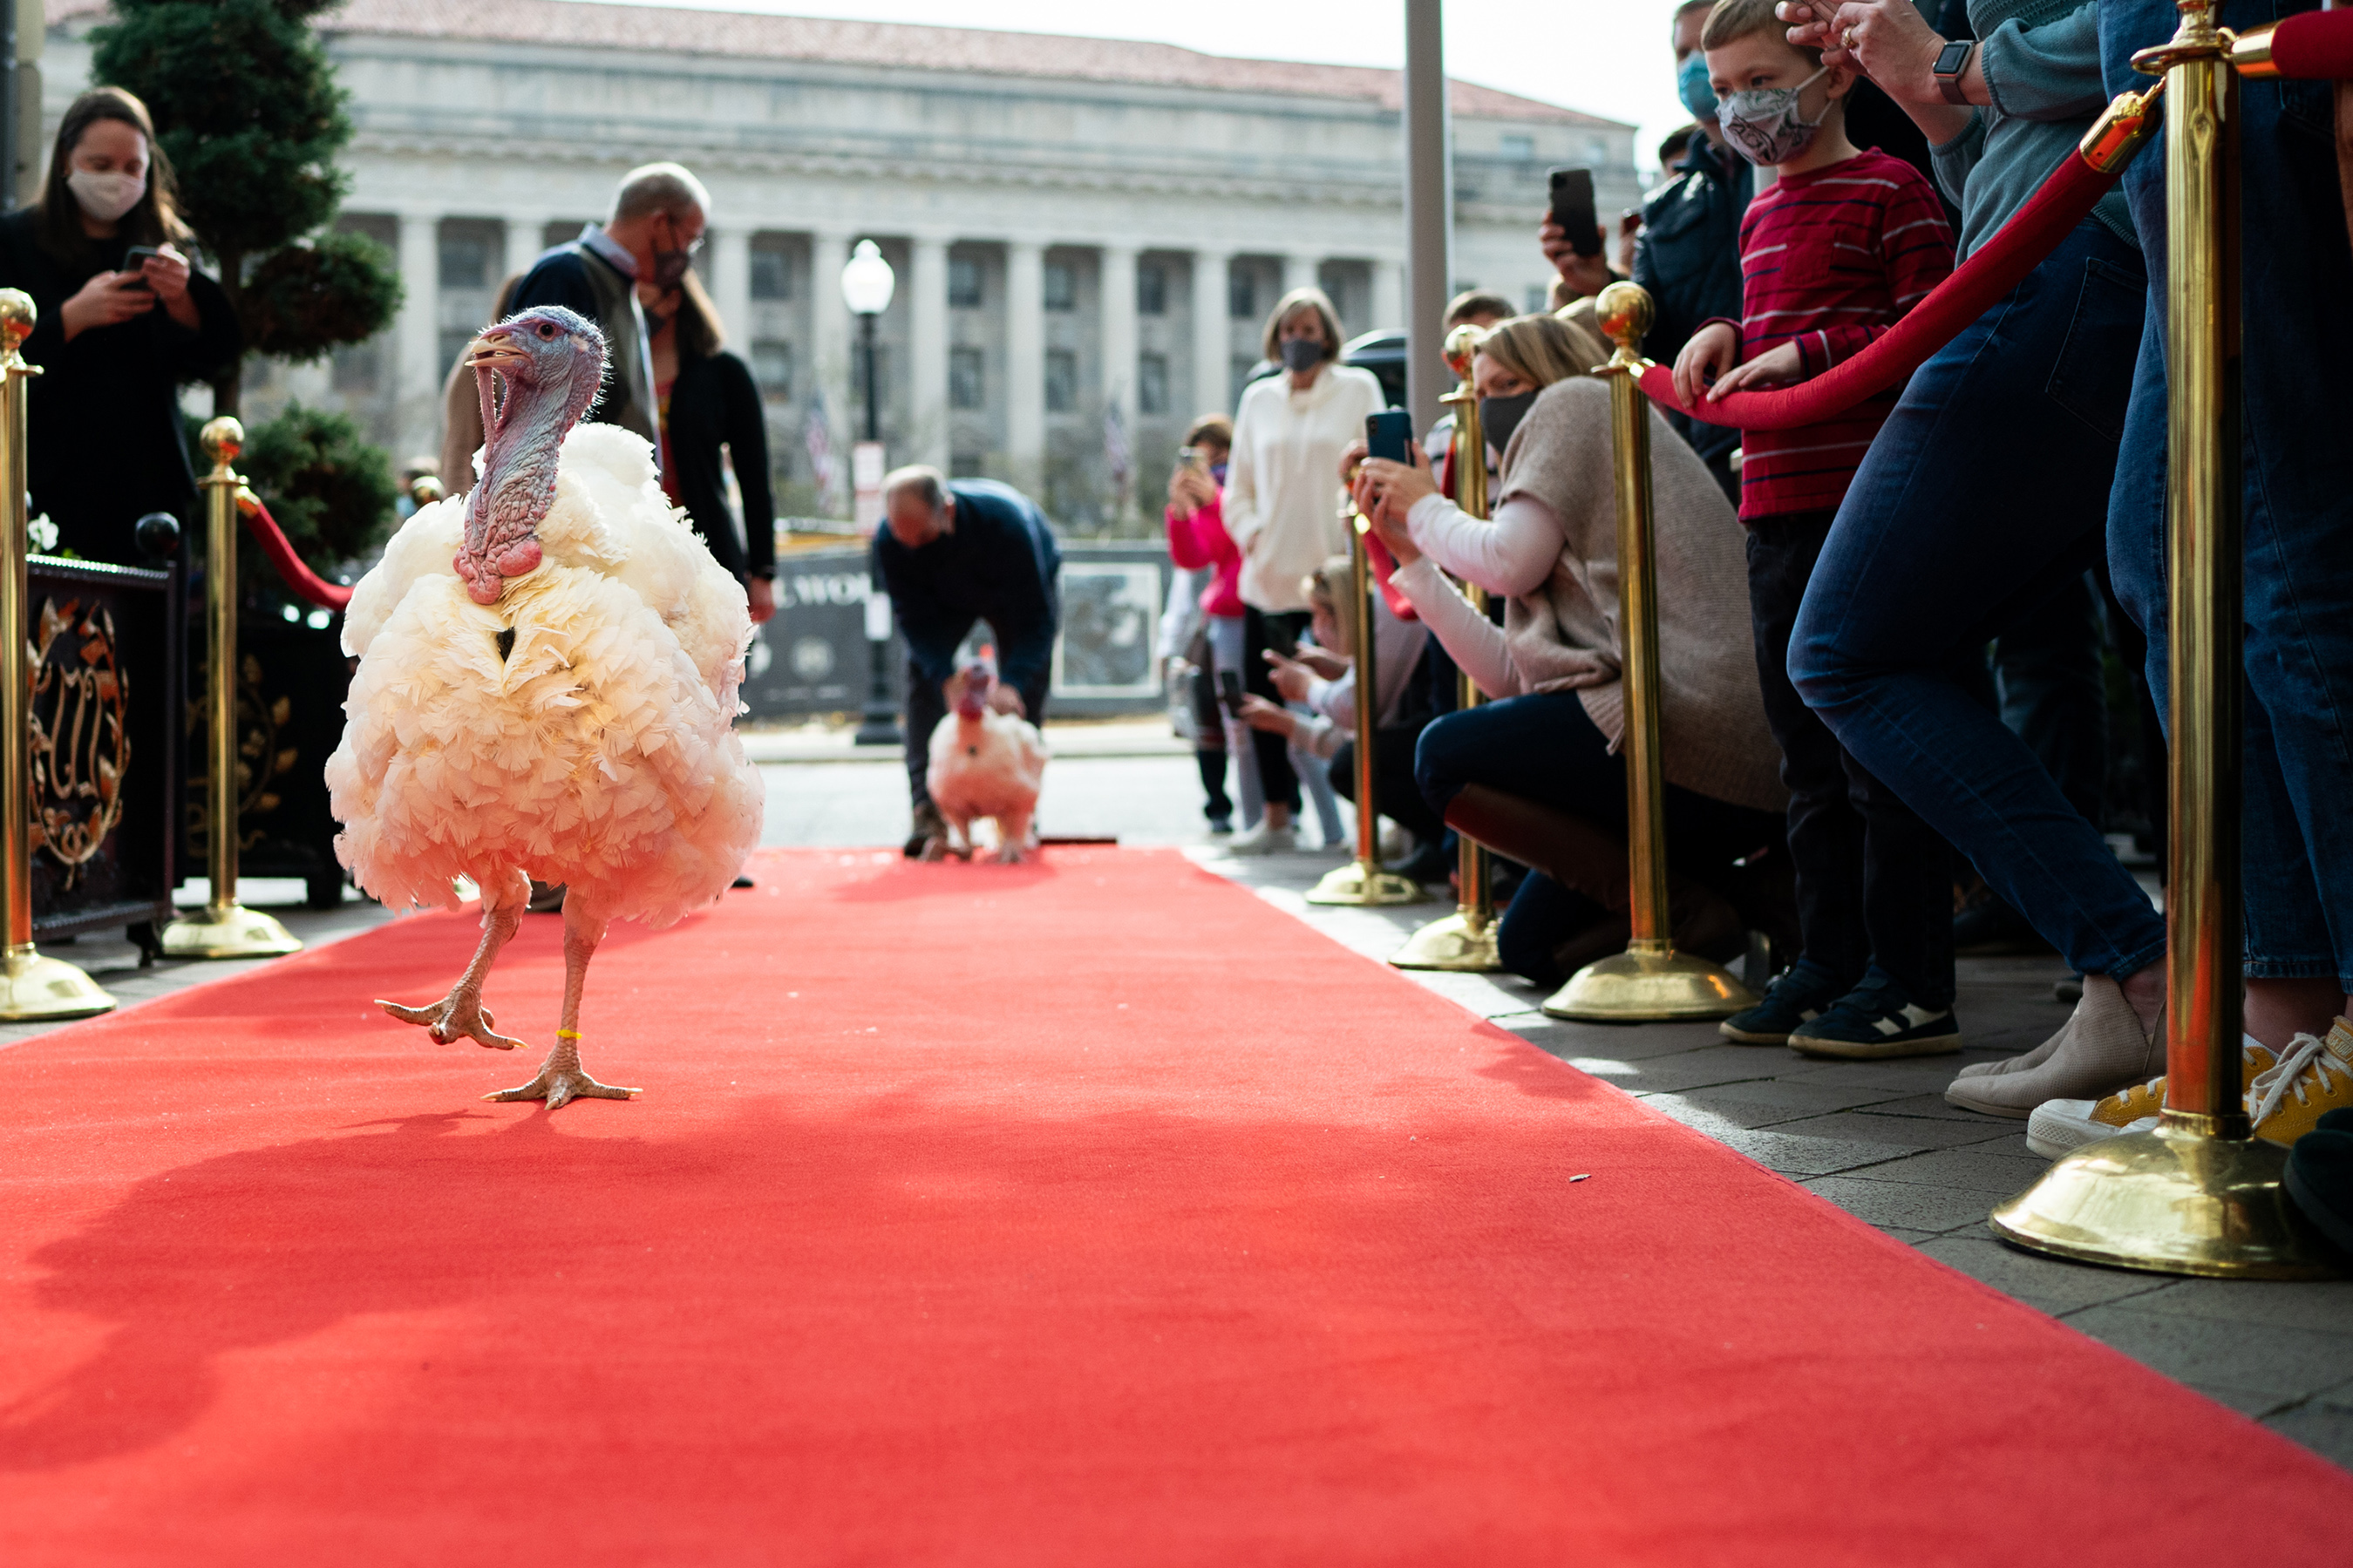 The National Thanksgiving Turkeys walk the red carpet at the Willard Intercontinental Hotel. Photo credit: Andrea Hanks/The White House